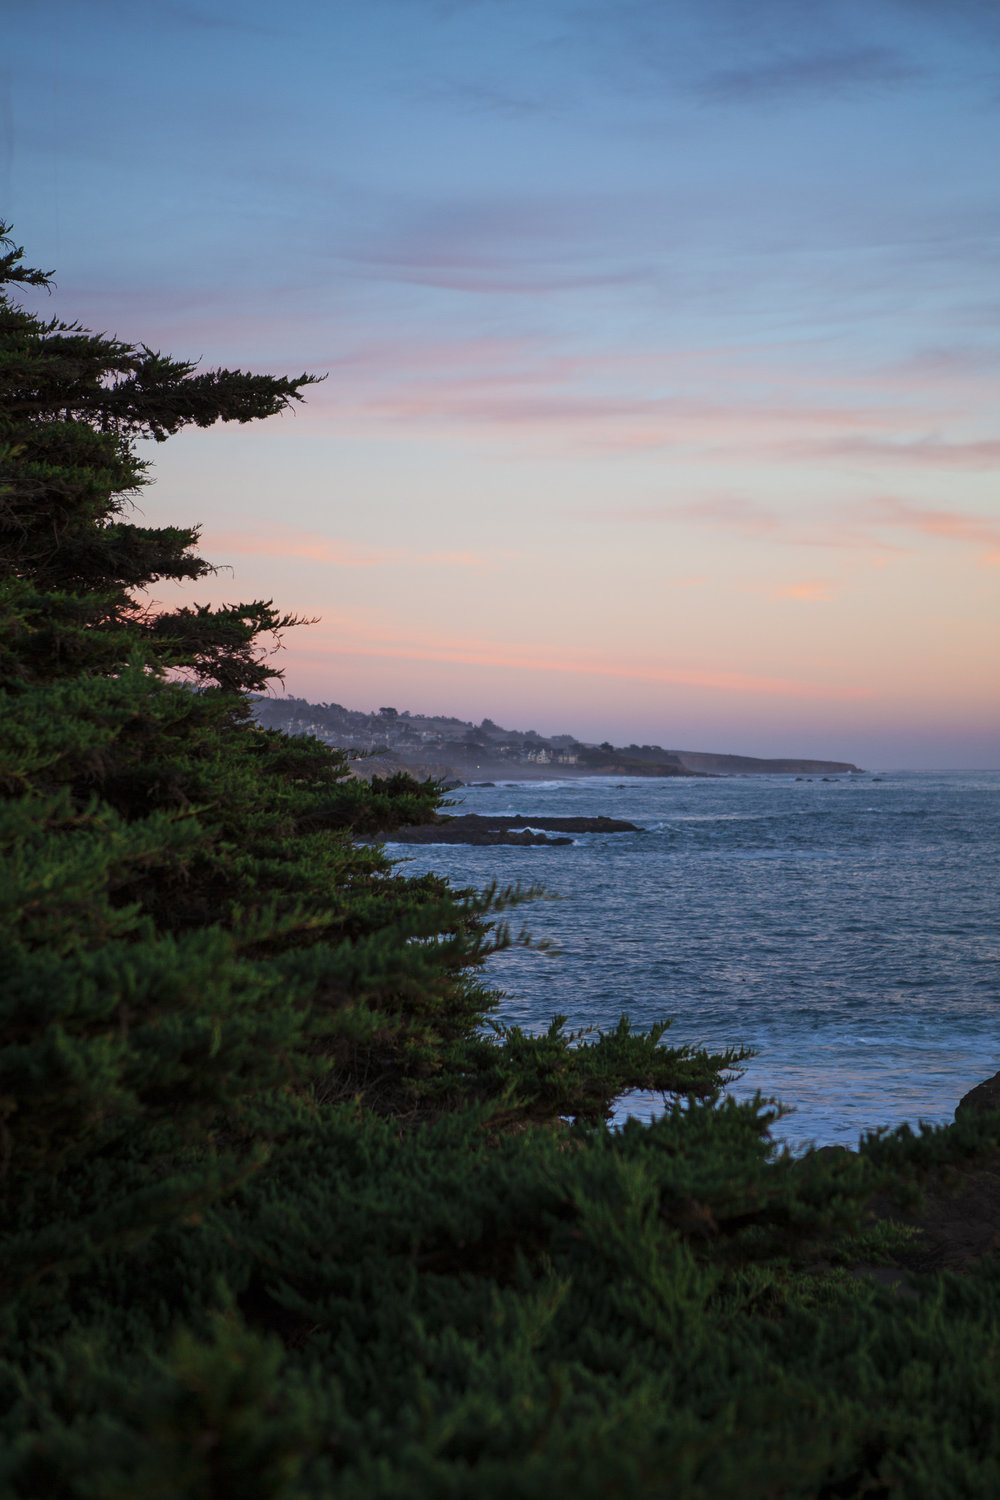 059_SanSimeonCampground_171230.jpg